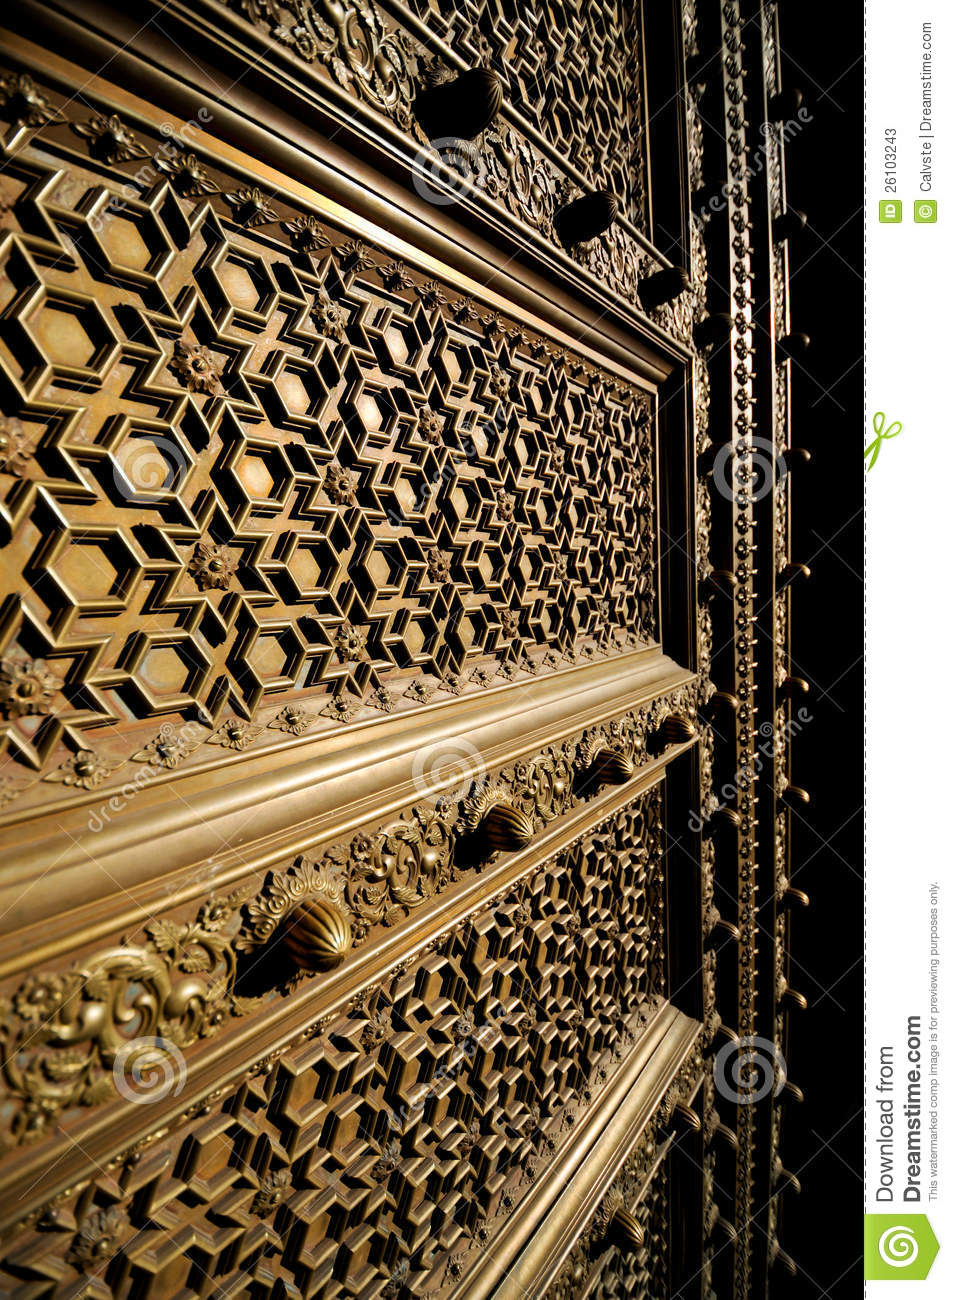 Jackson doors india sunprakruthi doors designs 02g jackson doors india u0026 jackson doors ernakulam u0026 oldcastle glass doors old castle doors guimaraes old castle eventelaan Image collections